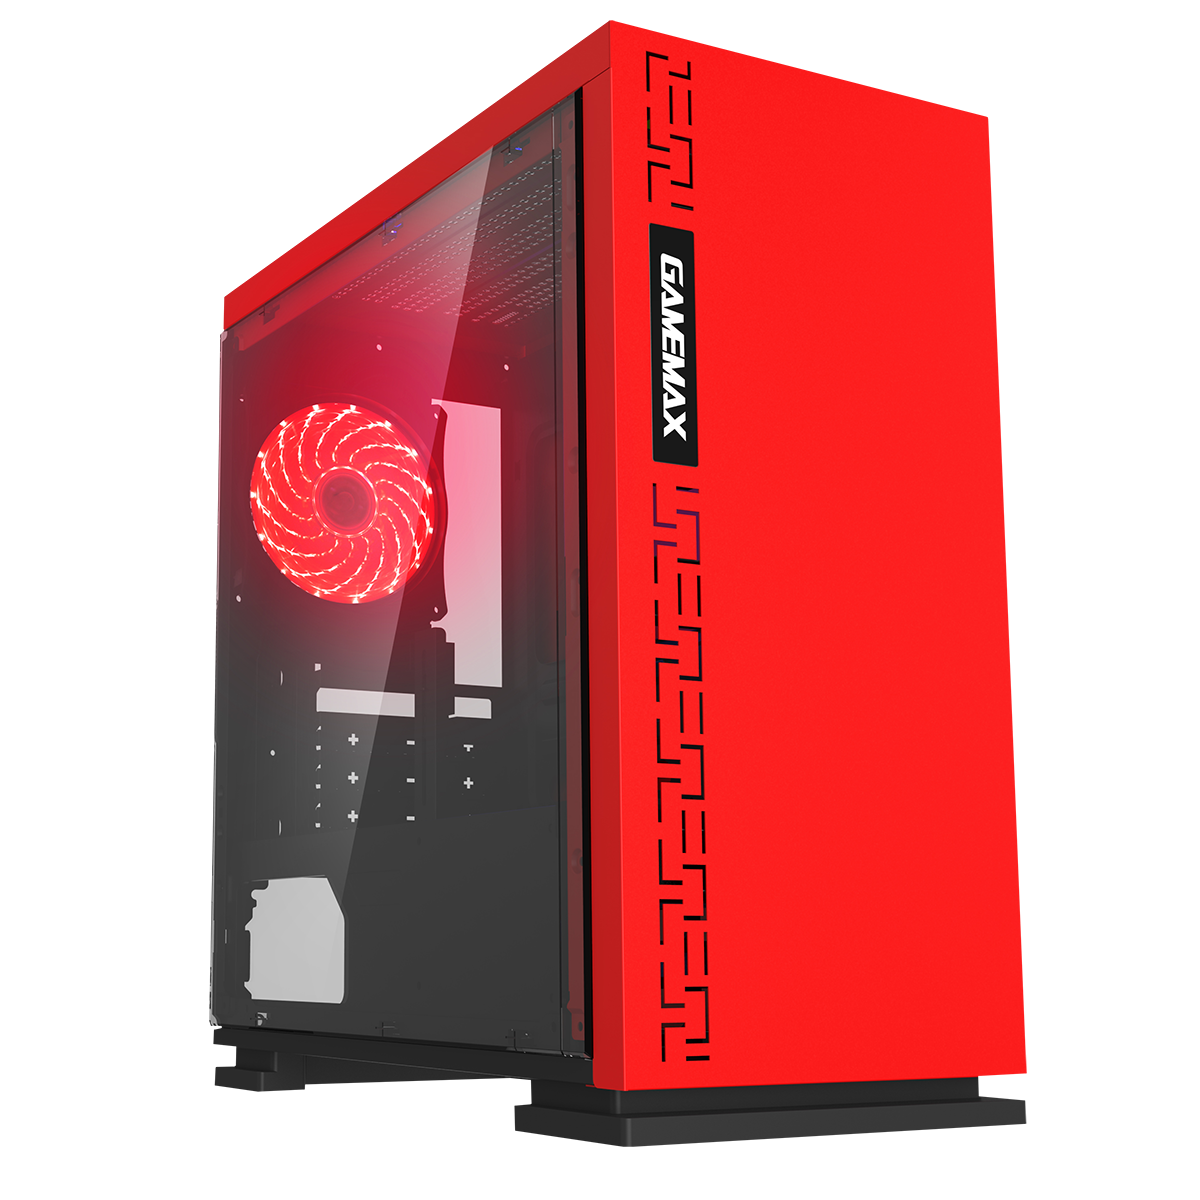 HST Expedition Red i5 Quad Core GTX 4GB 1050Ti Gaming PC